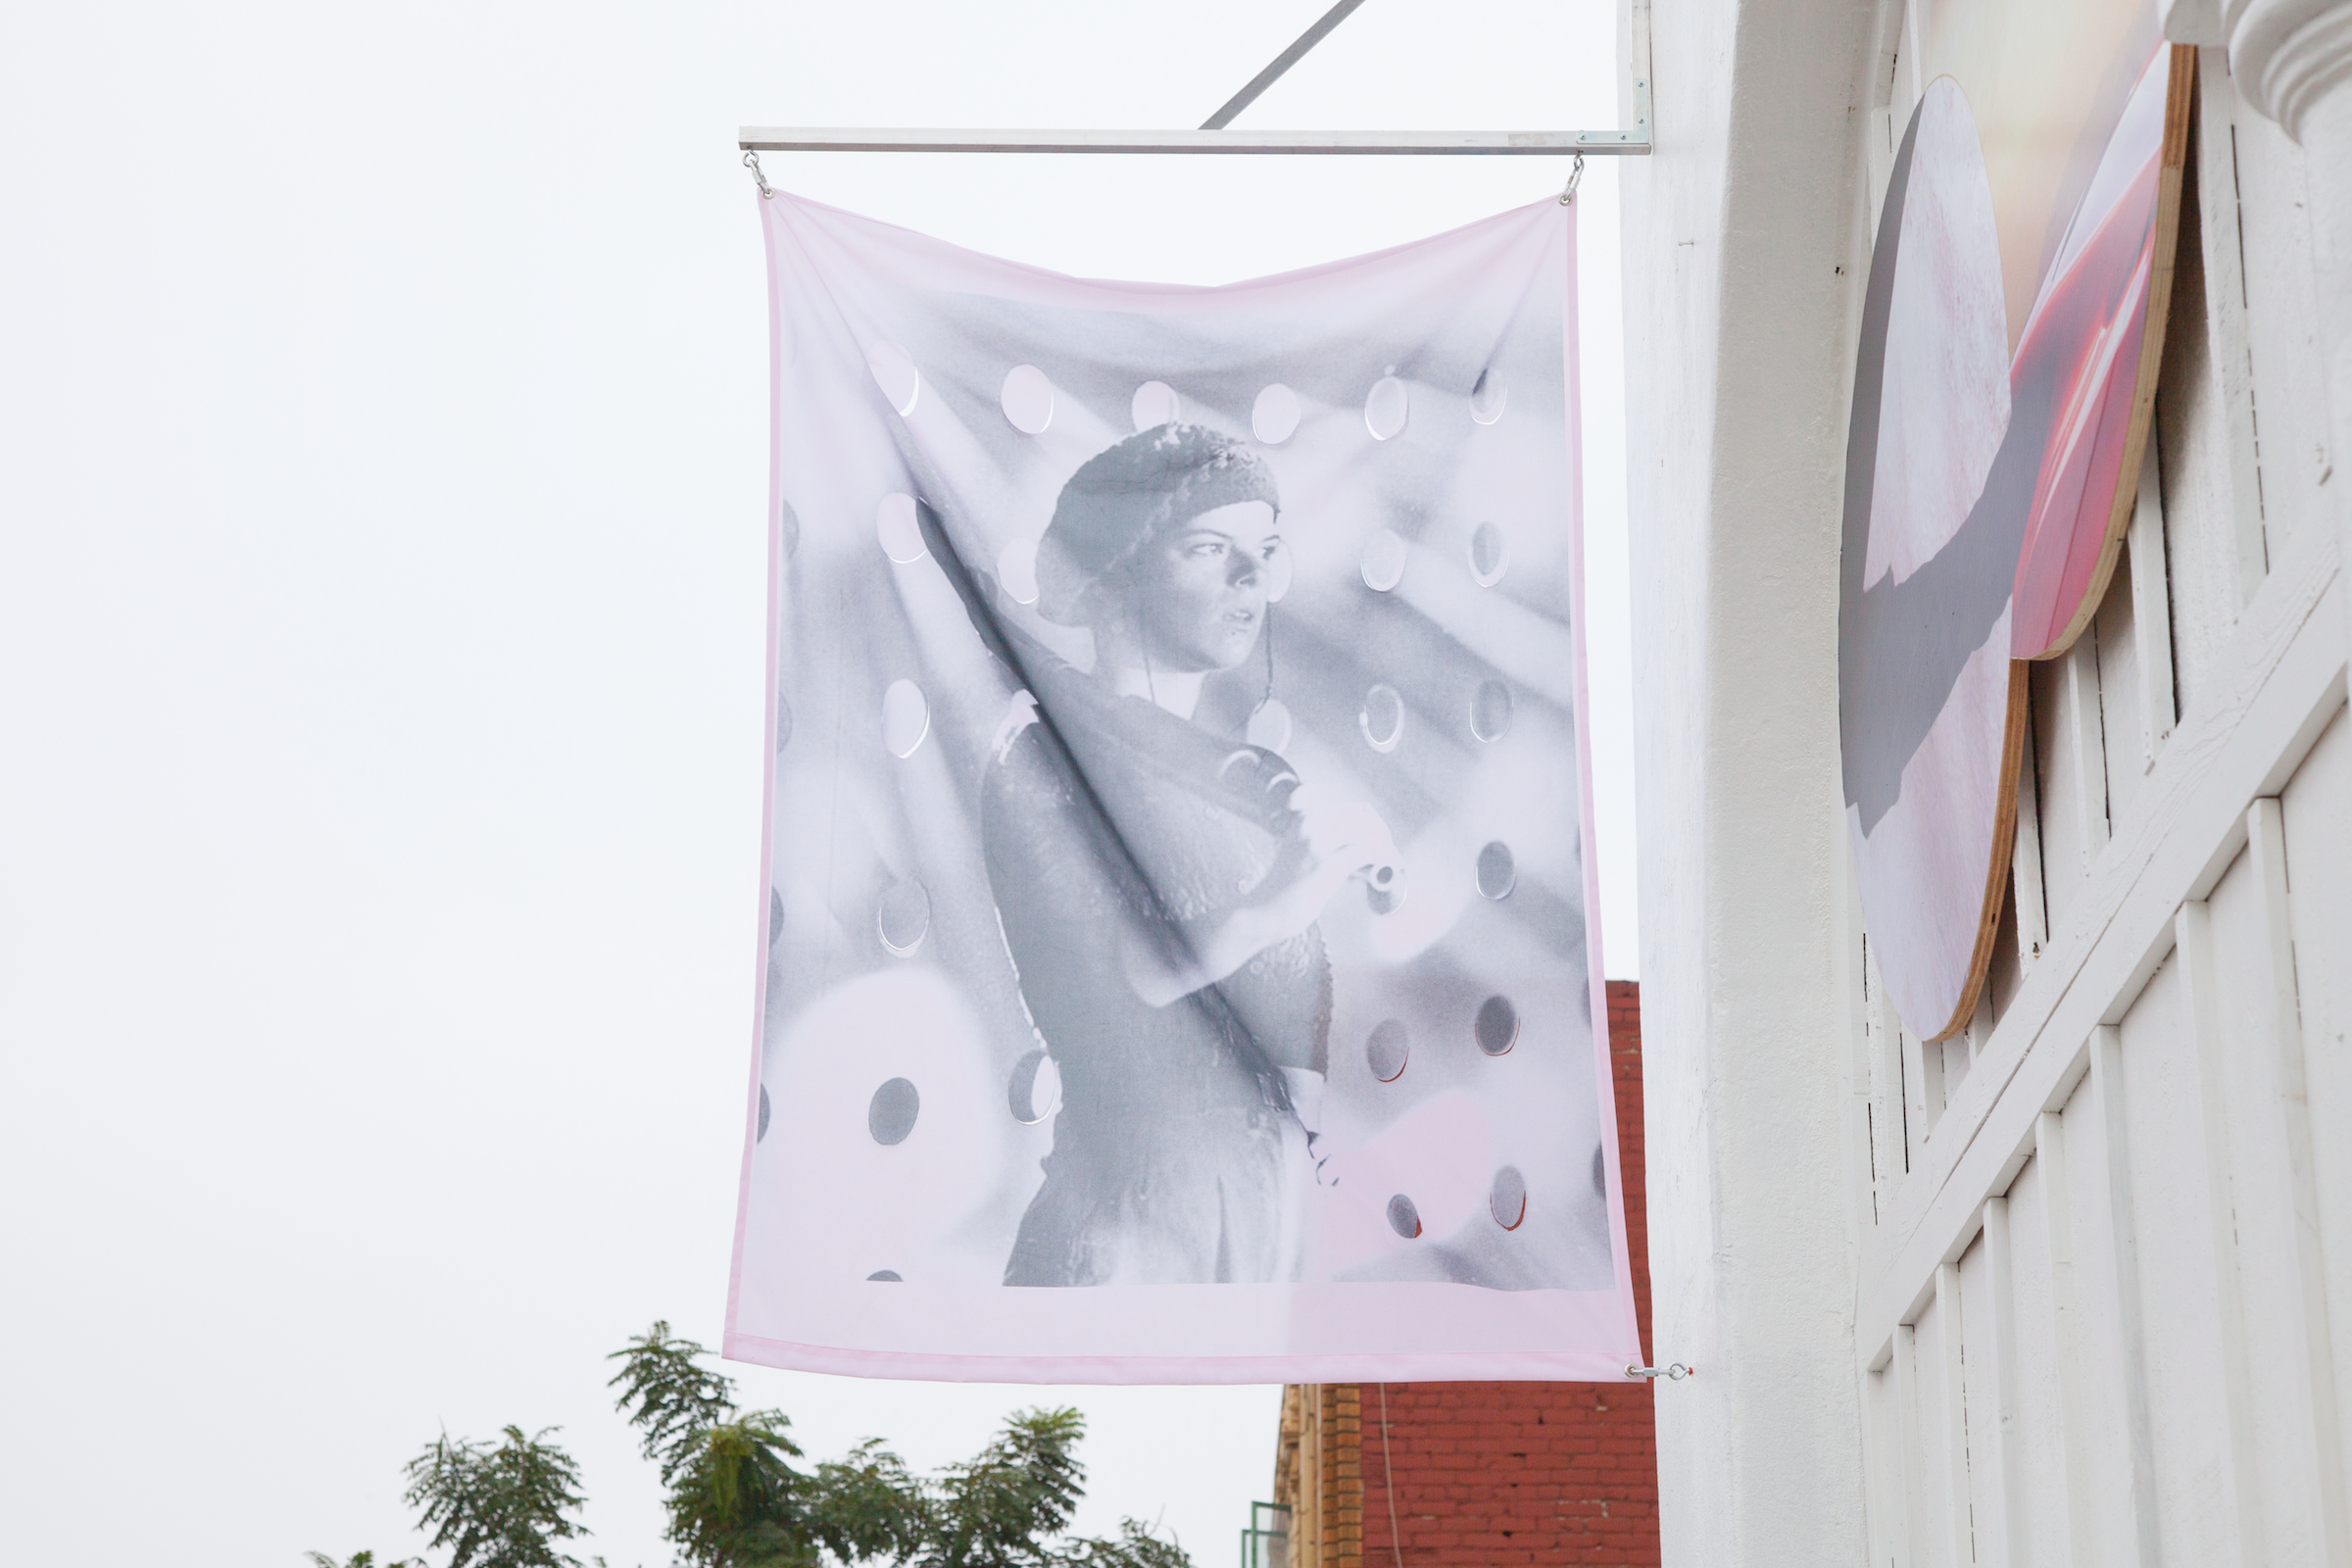 Servane Mary, Untitled (Woman With Gun) , 2012, reversible pigment printed vinyl, 67 x 47.5 in